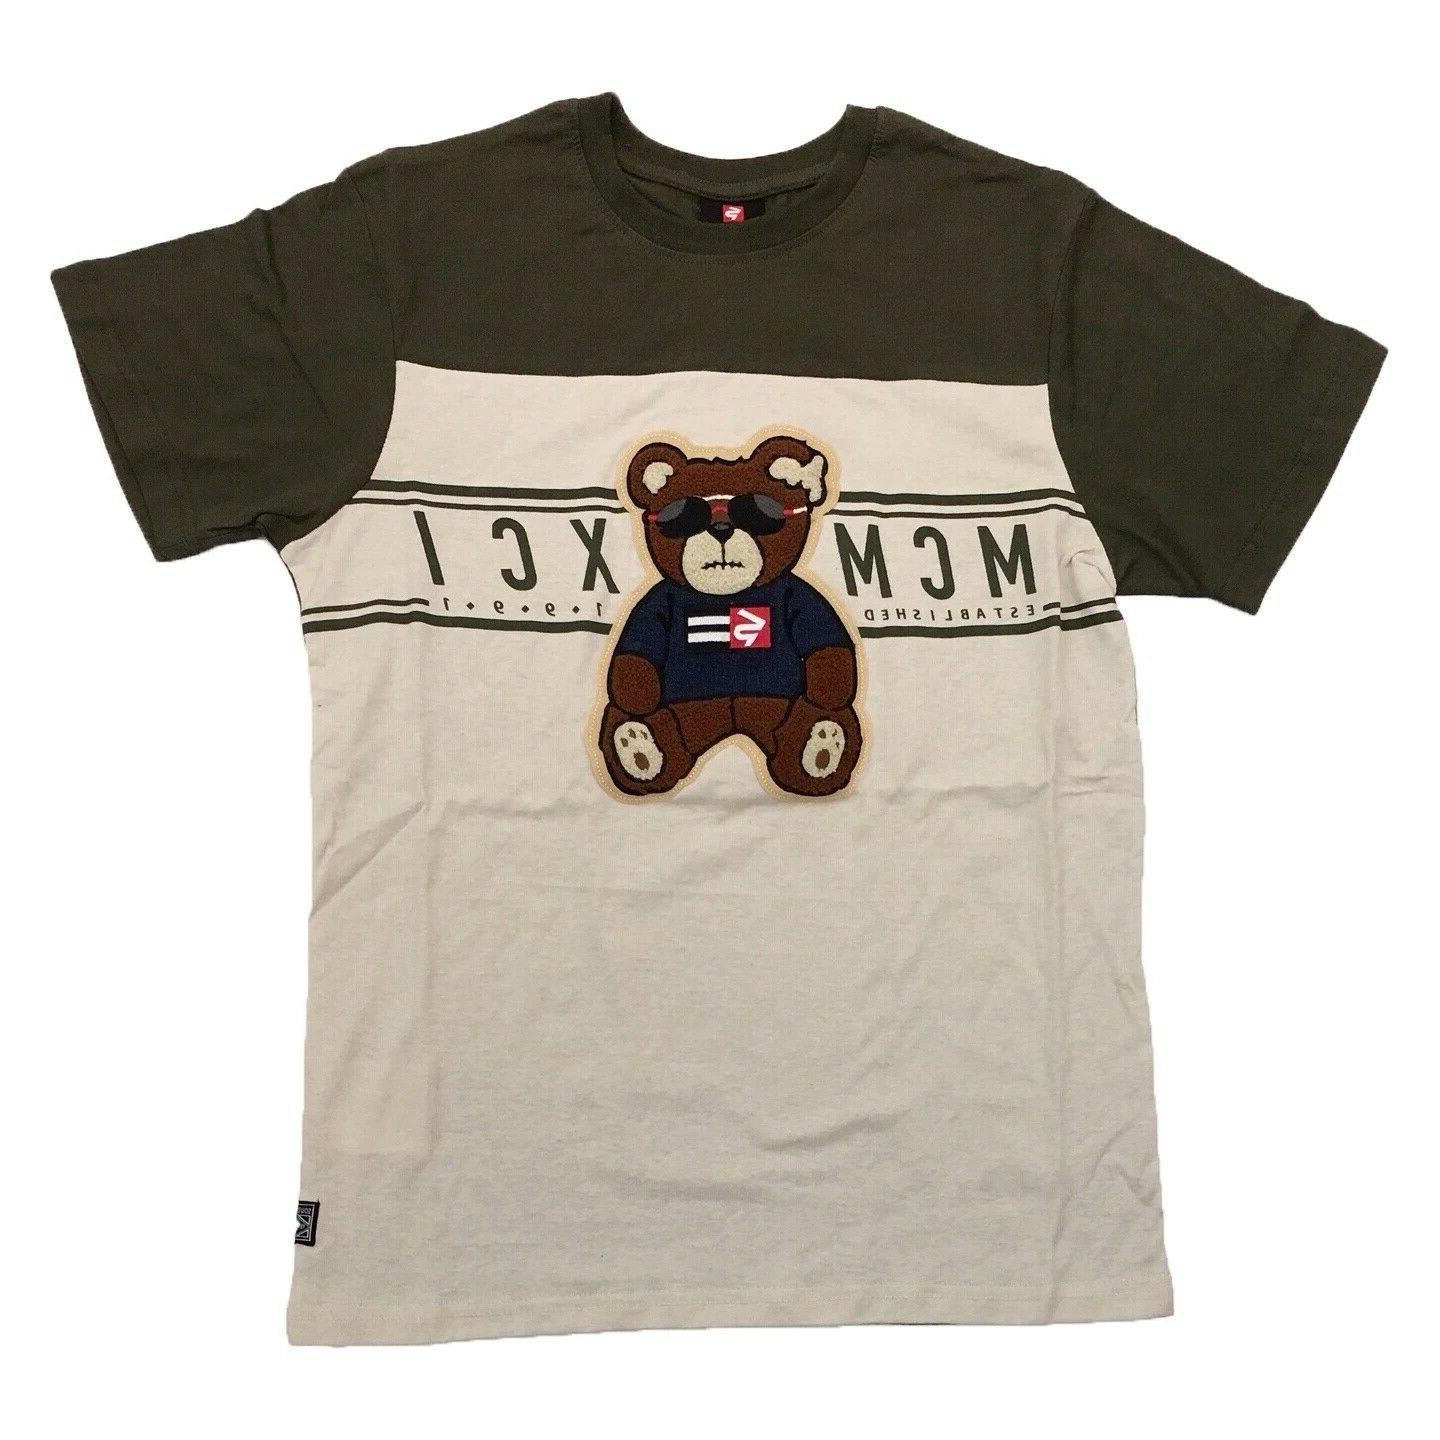 new w tag mens bear patch embroidered